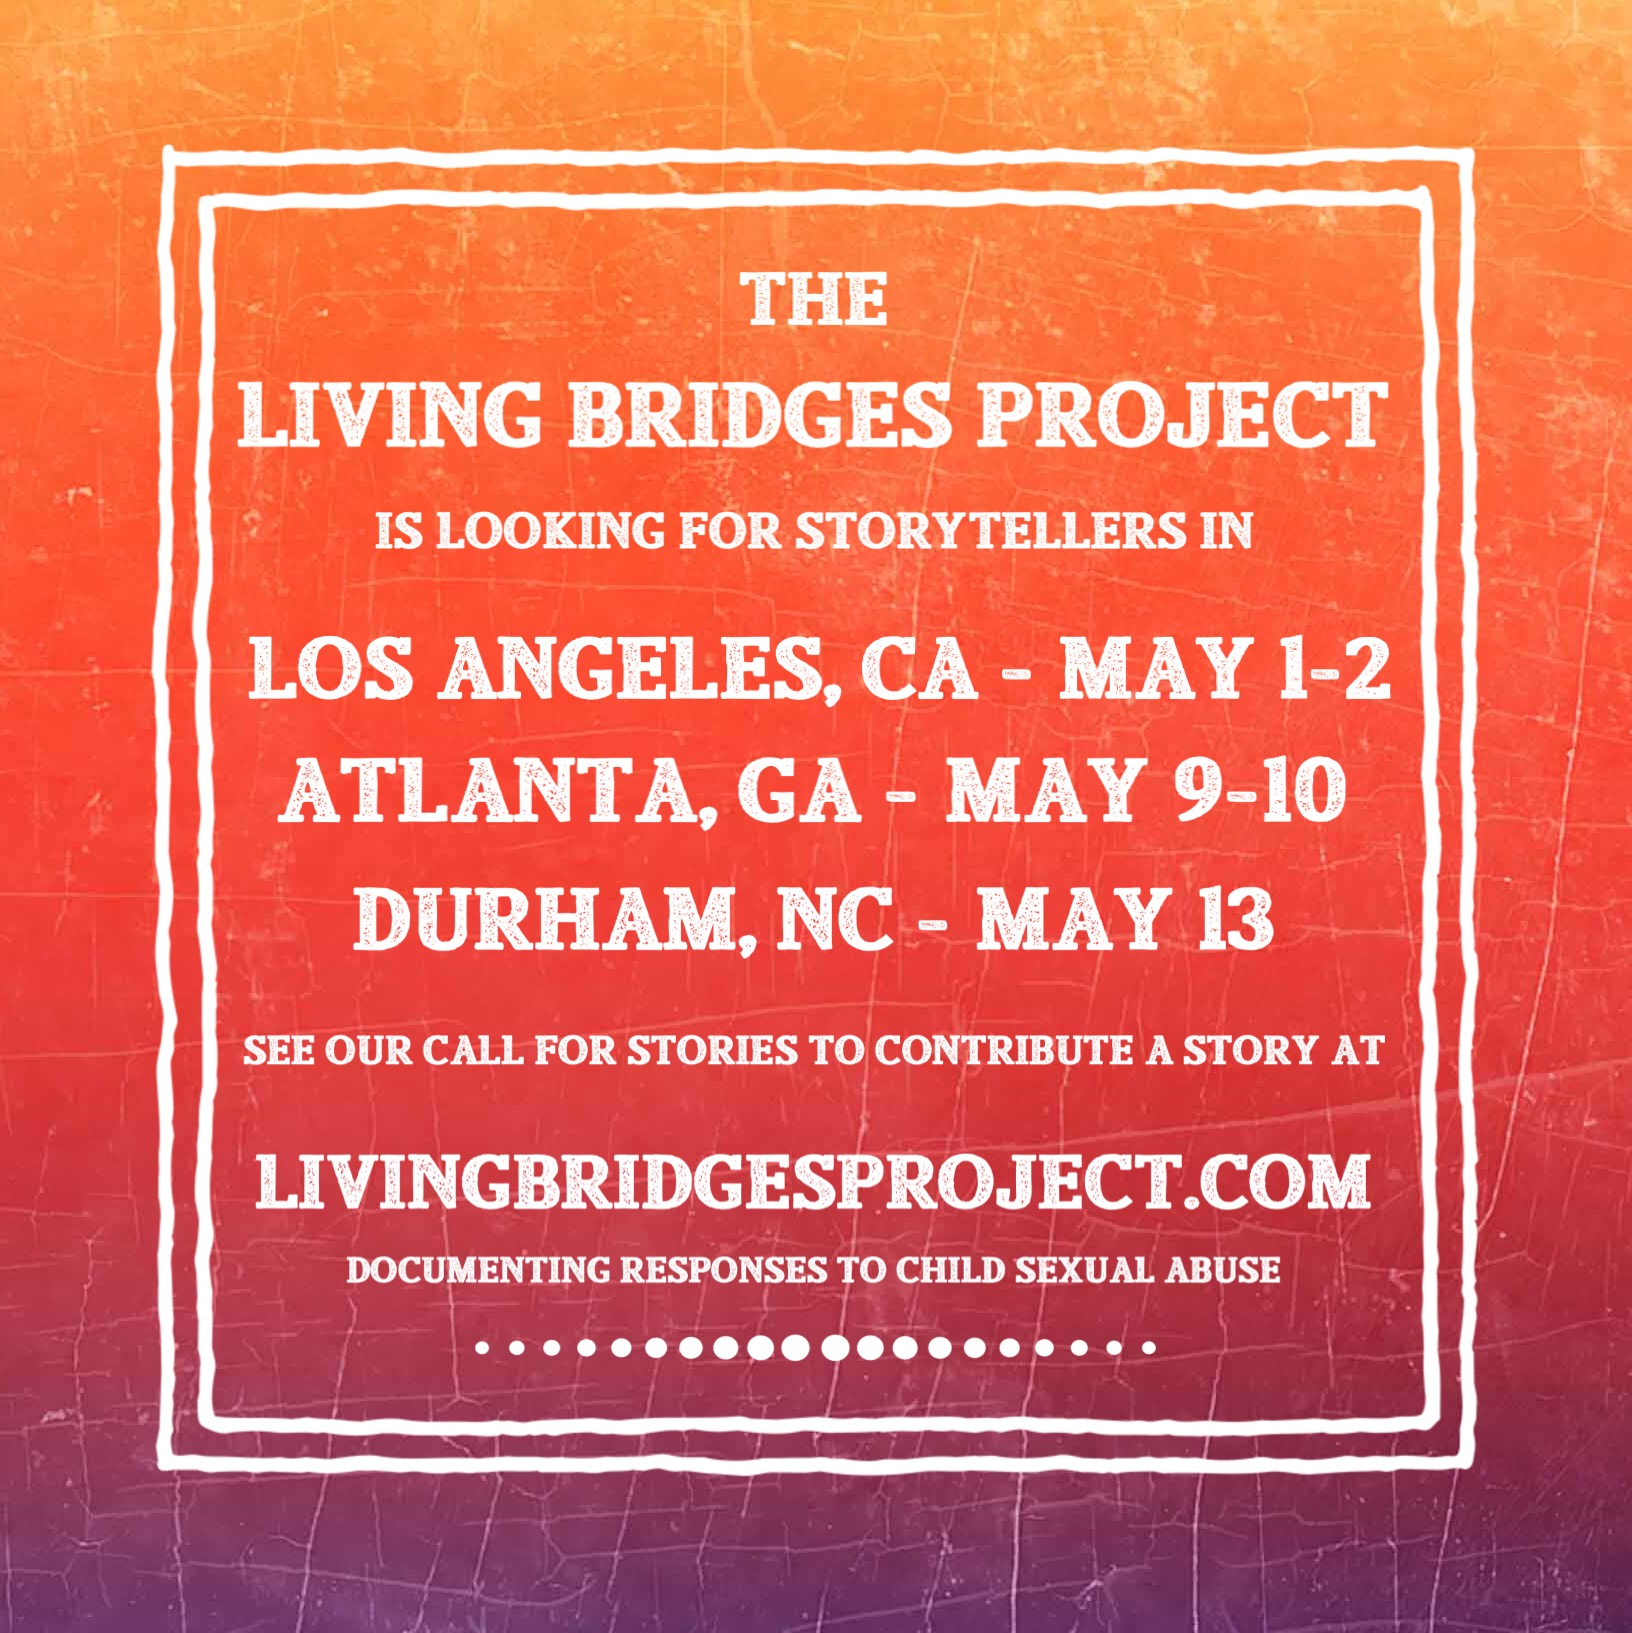 """[image reads """"the Living Bridges Project is looking for storytellers in Los Angeles, CA, Atlanta, GA, Durham, NC. See the call for stories to contribute a story. livingbridgesproject.com , documenting responses to child sexual abuse.""""]"""